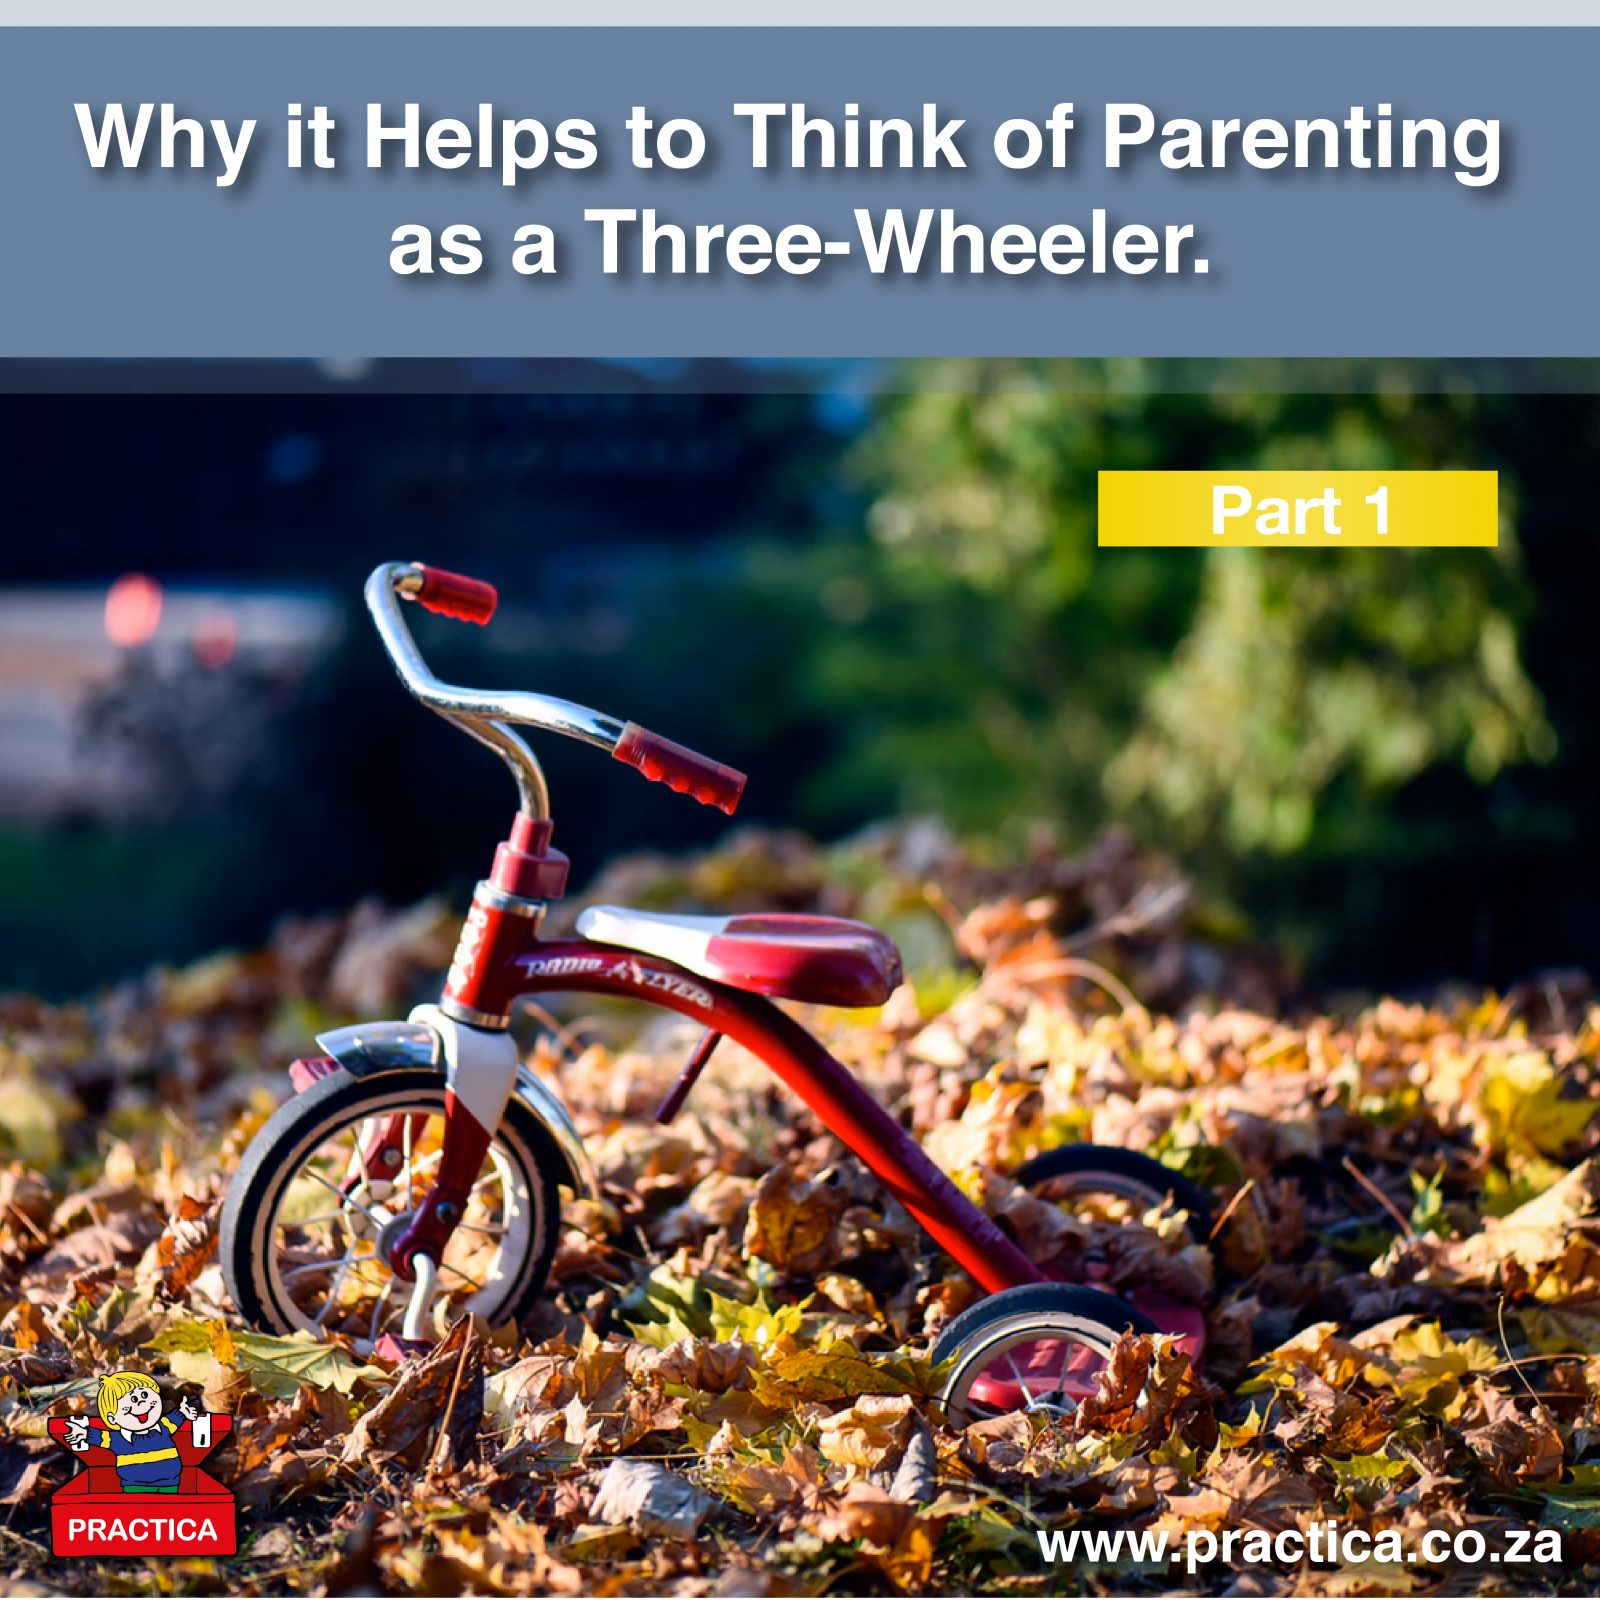 Why it Helps to Think of Parenting as a Three-Wheeler: Part 1